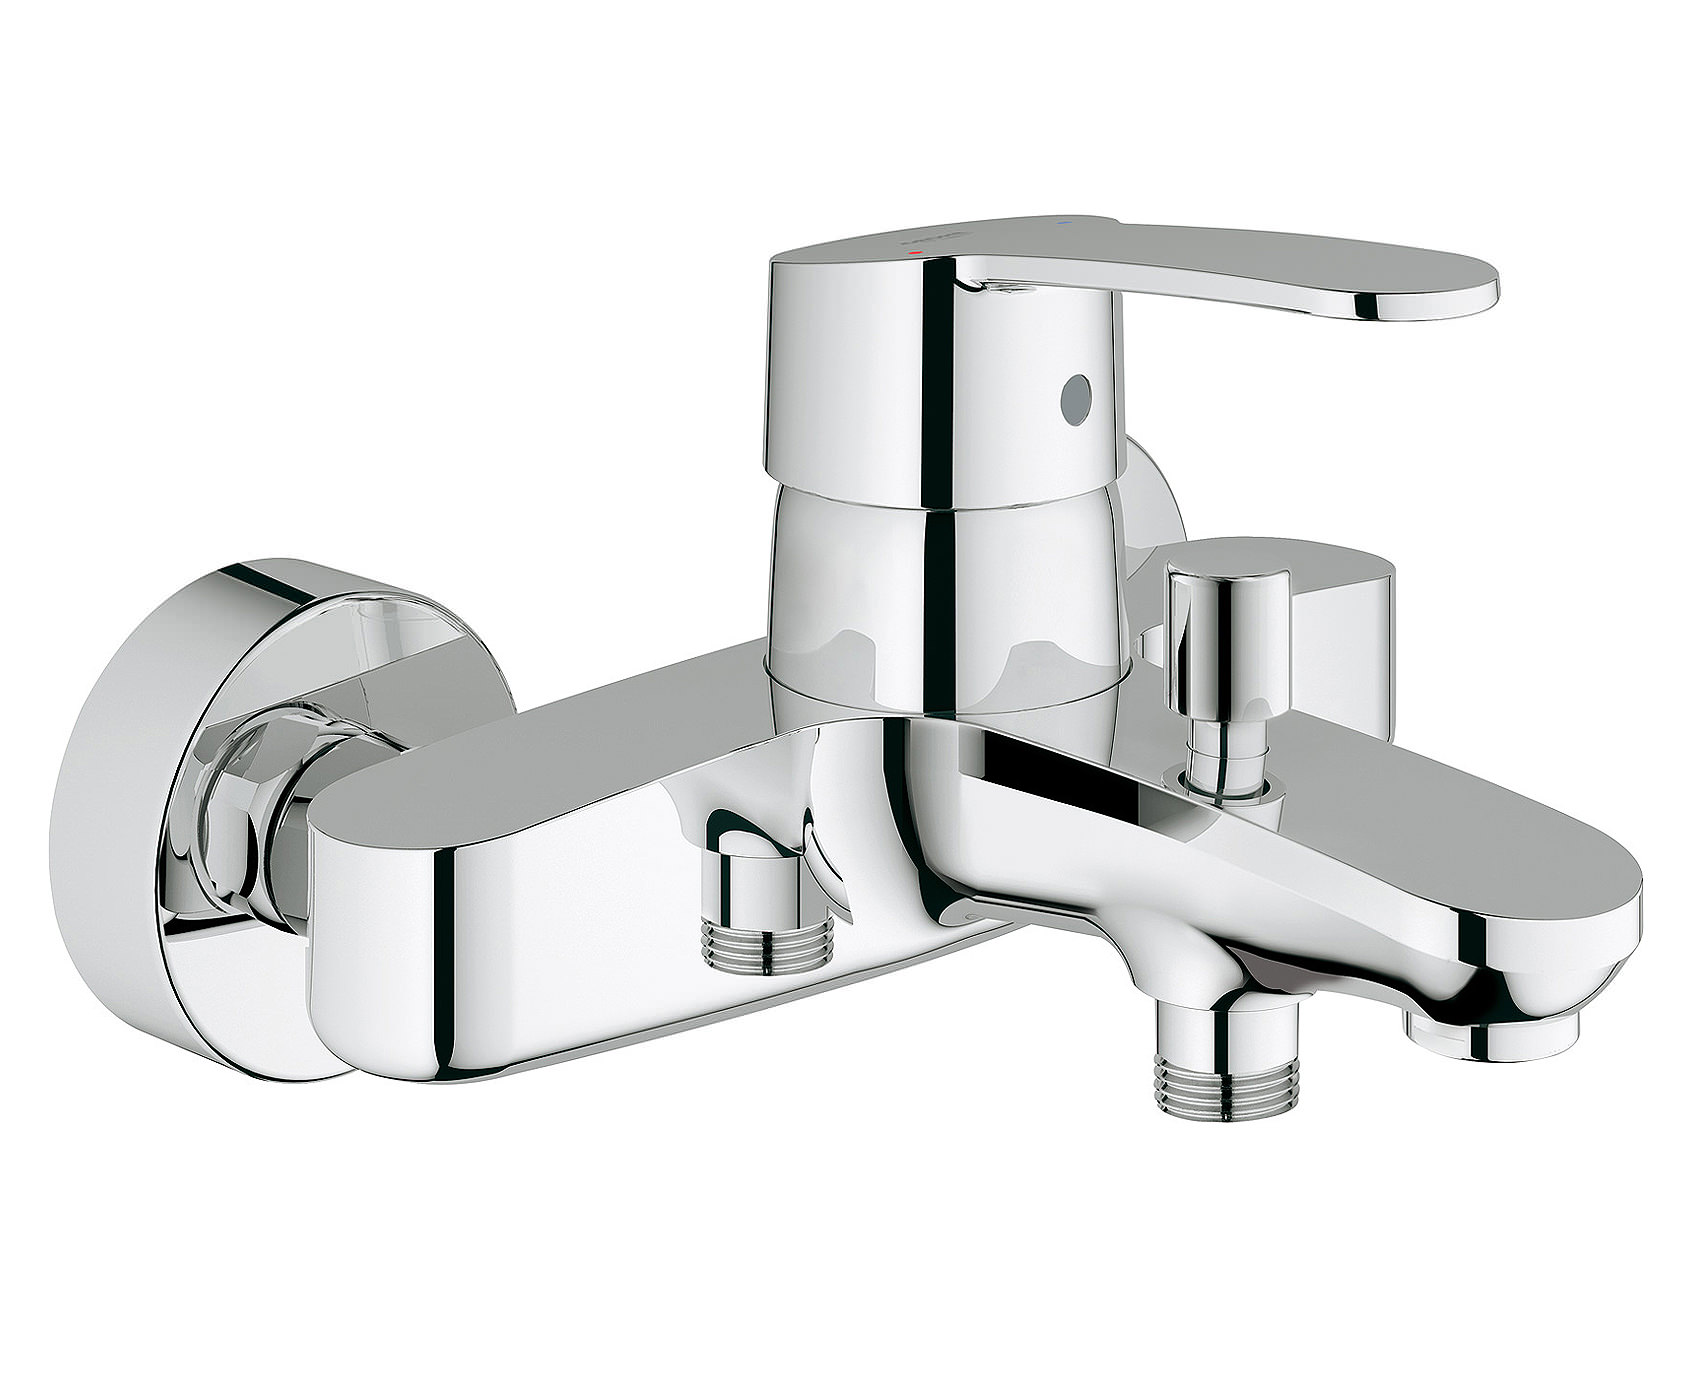 grohe eurostyle cosmo wall mounted bath shower mixer tap 33591002. Black Bedroom Furniture Sets. Home Design Ideas